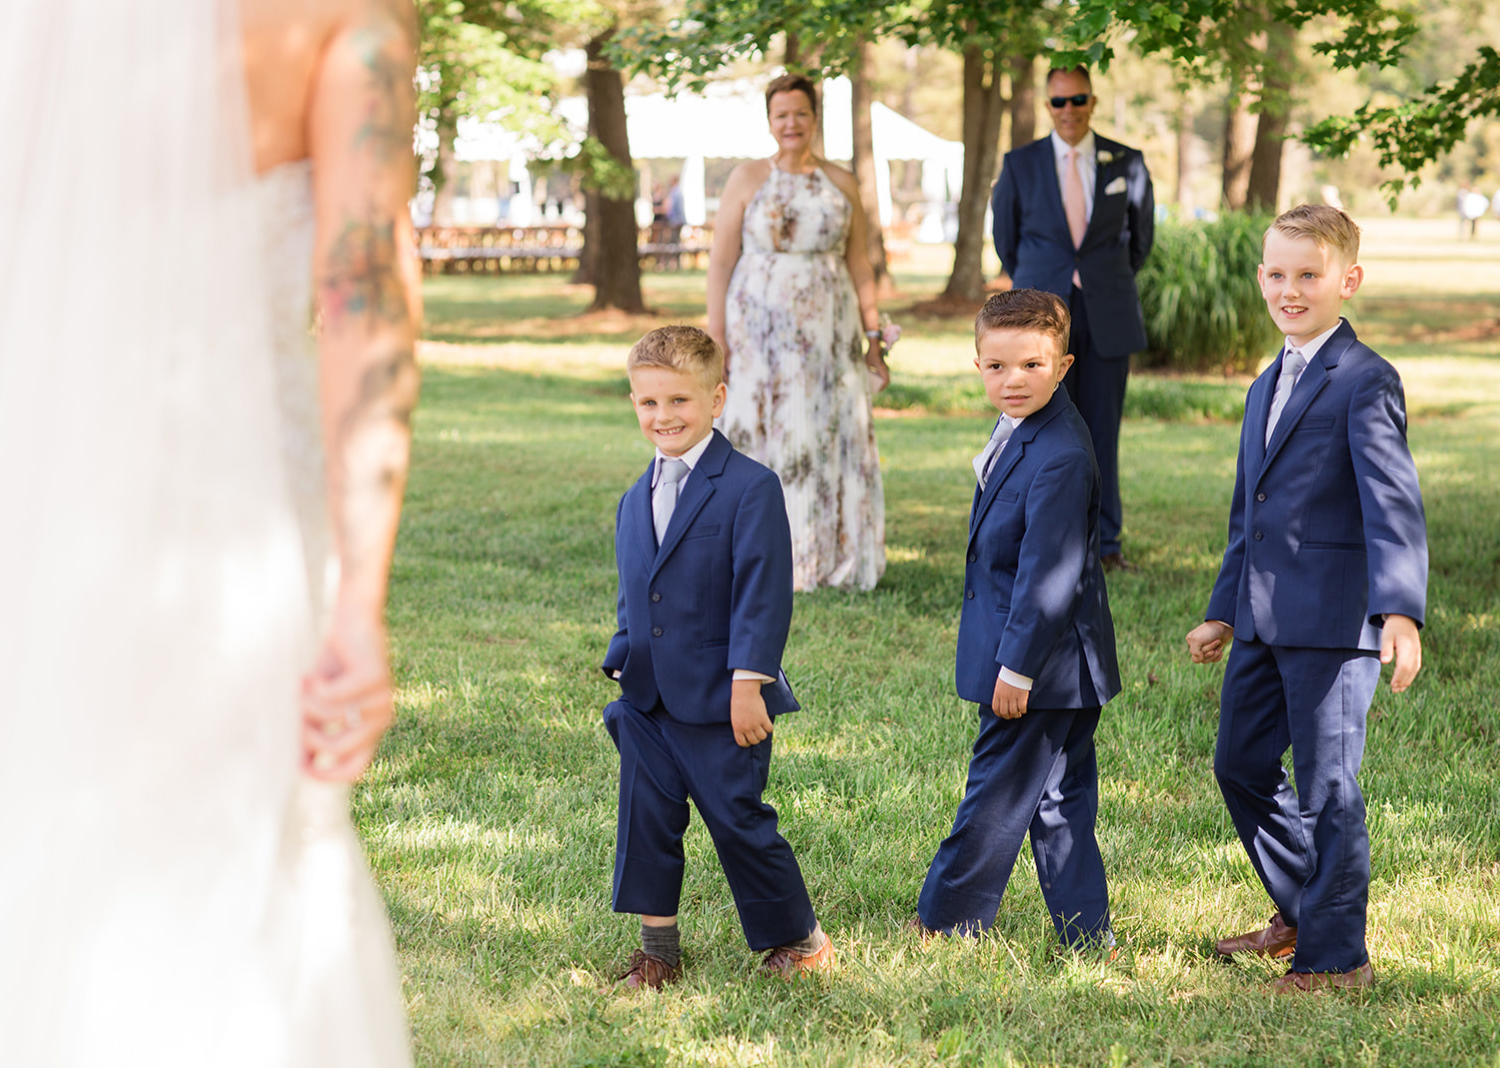 sons of the bride and groom with their wedding suits